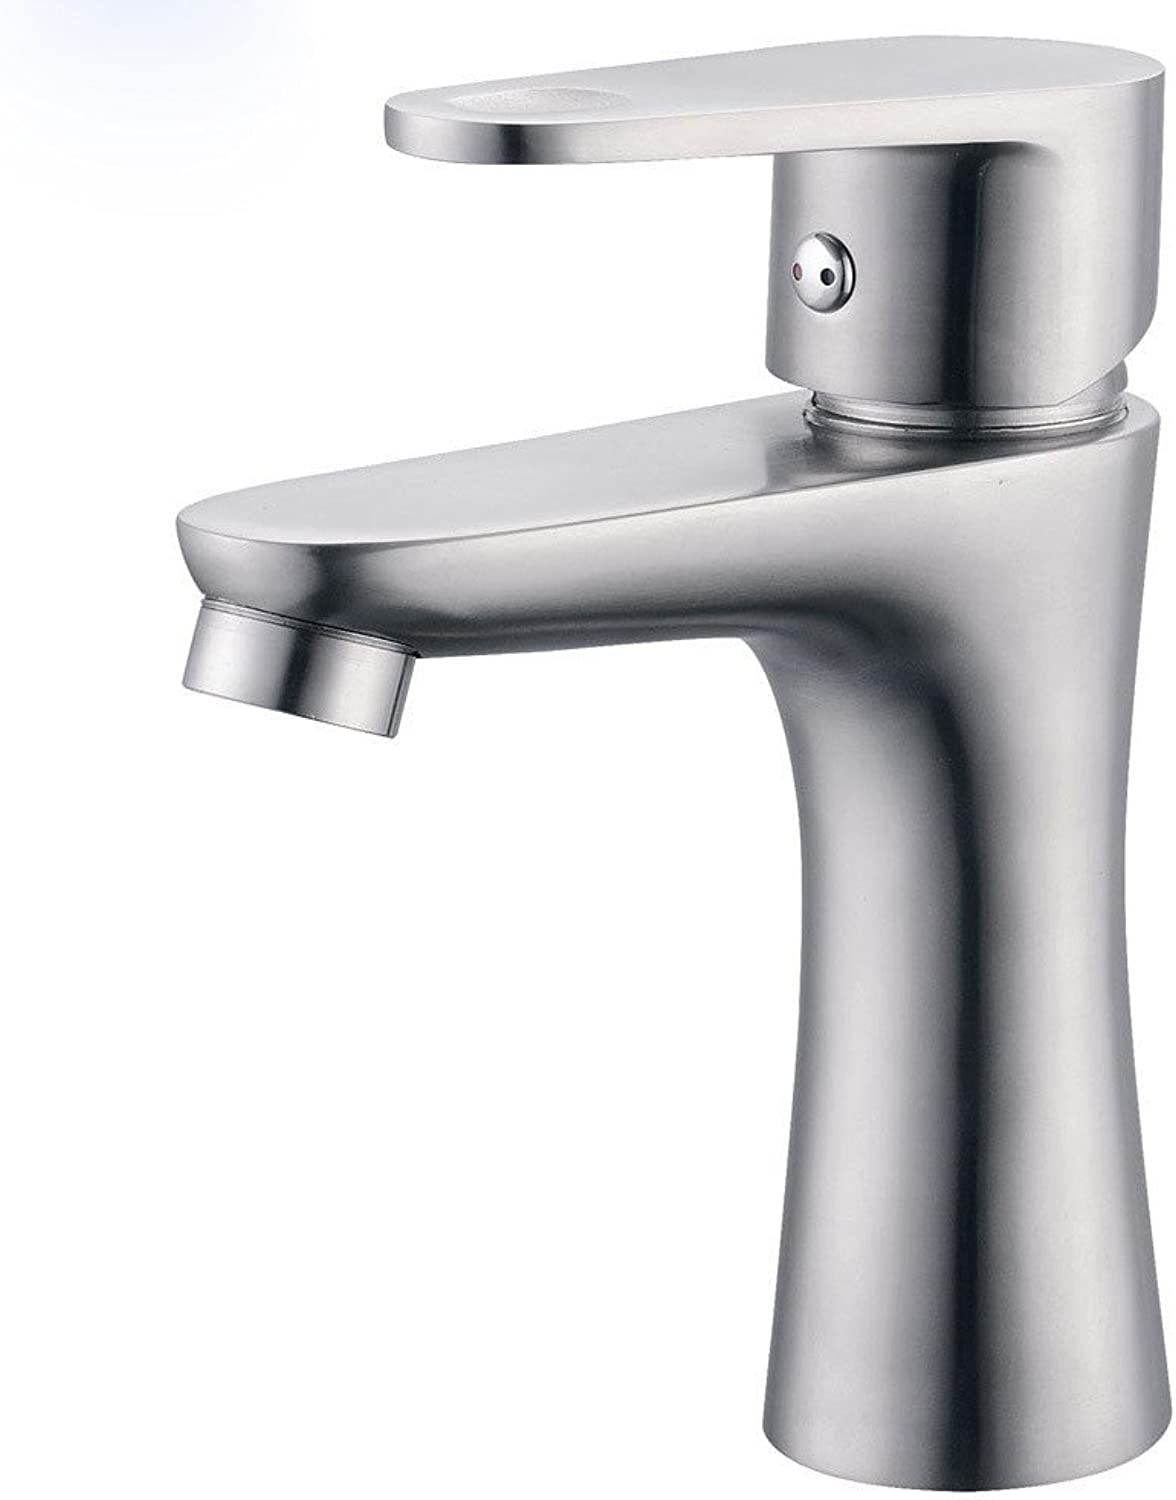 MDRW-Bathroom Basin Tap Mixing Valve Single Hole Stainless Steel Basin Tap Basin Tap Type Single Type Wrench